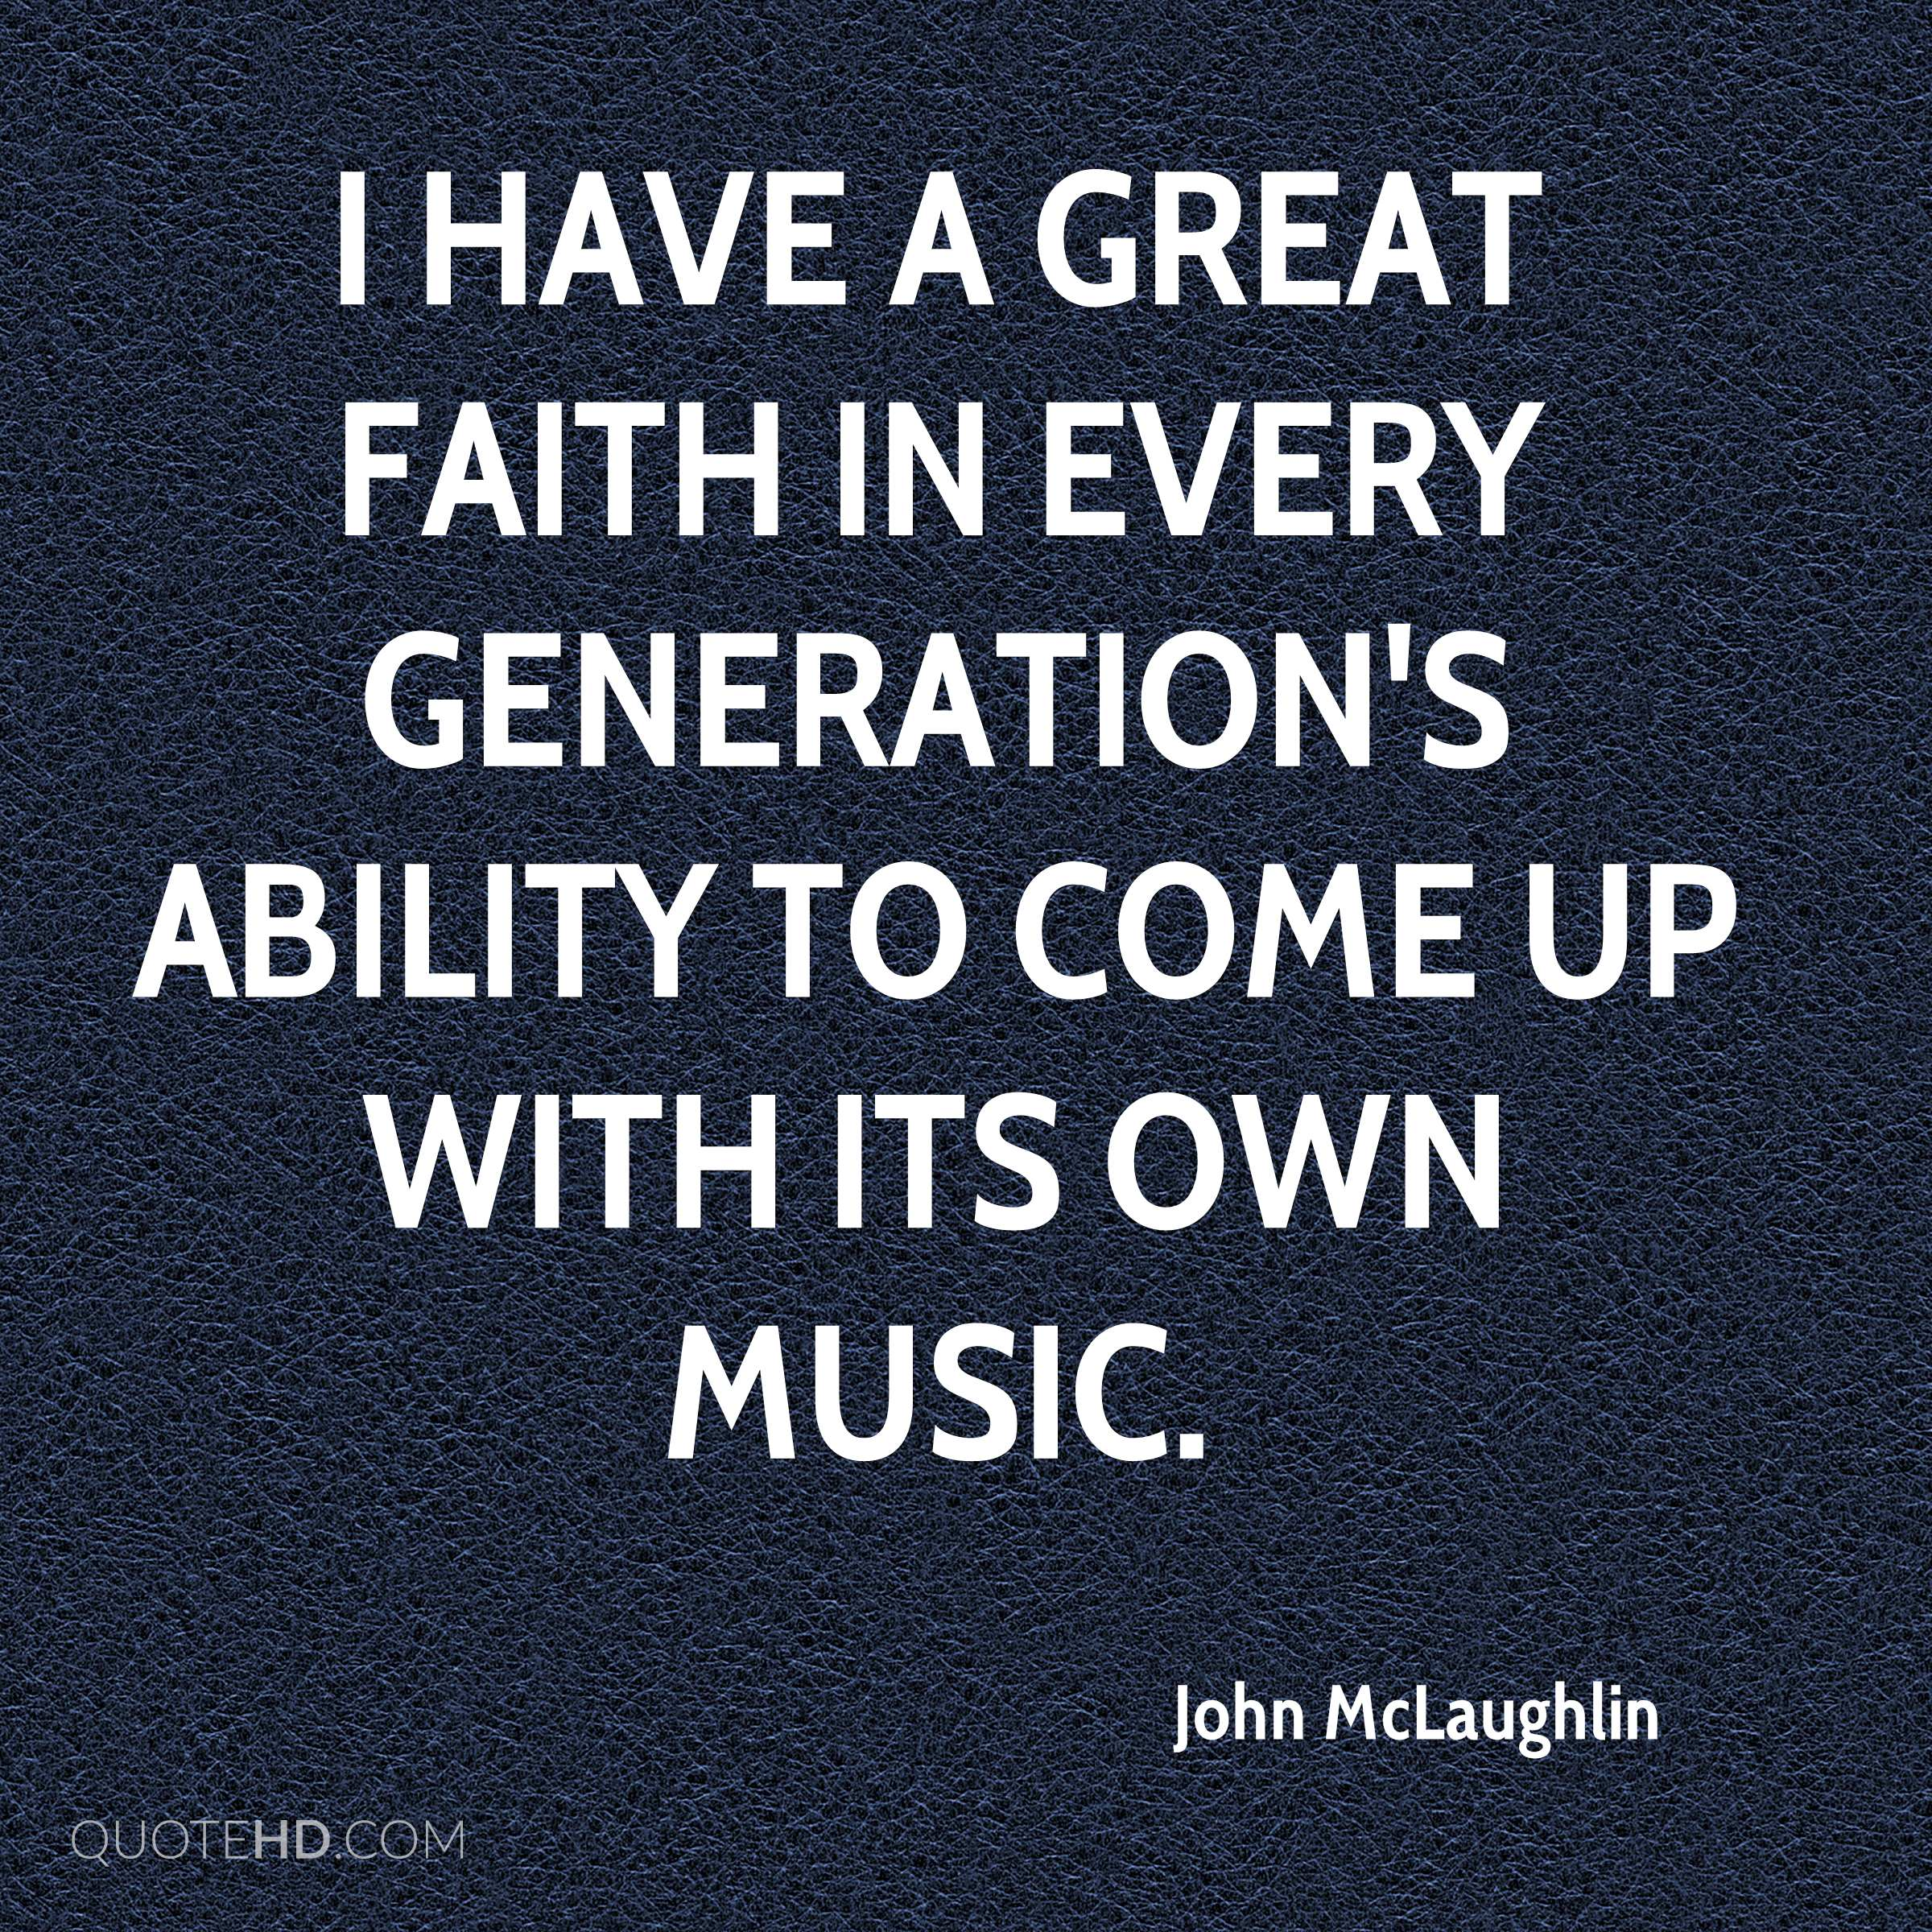 I have a great faith in every generation's ability to come up with its own music.